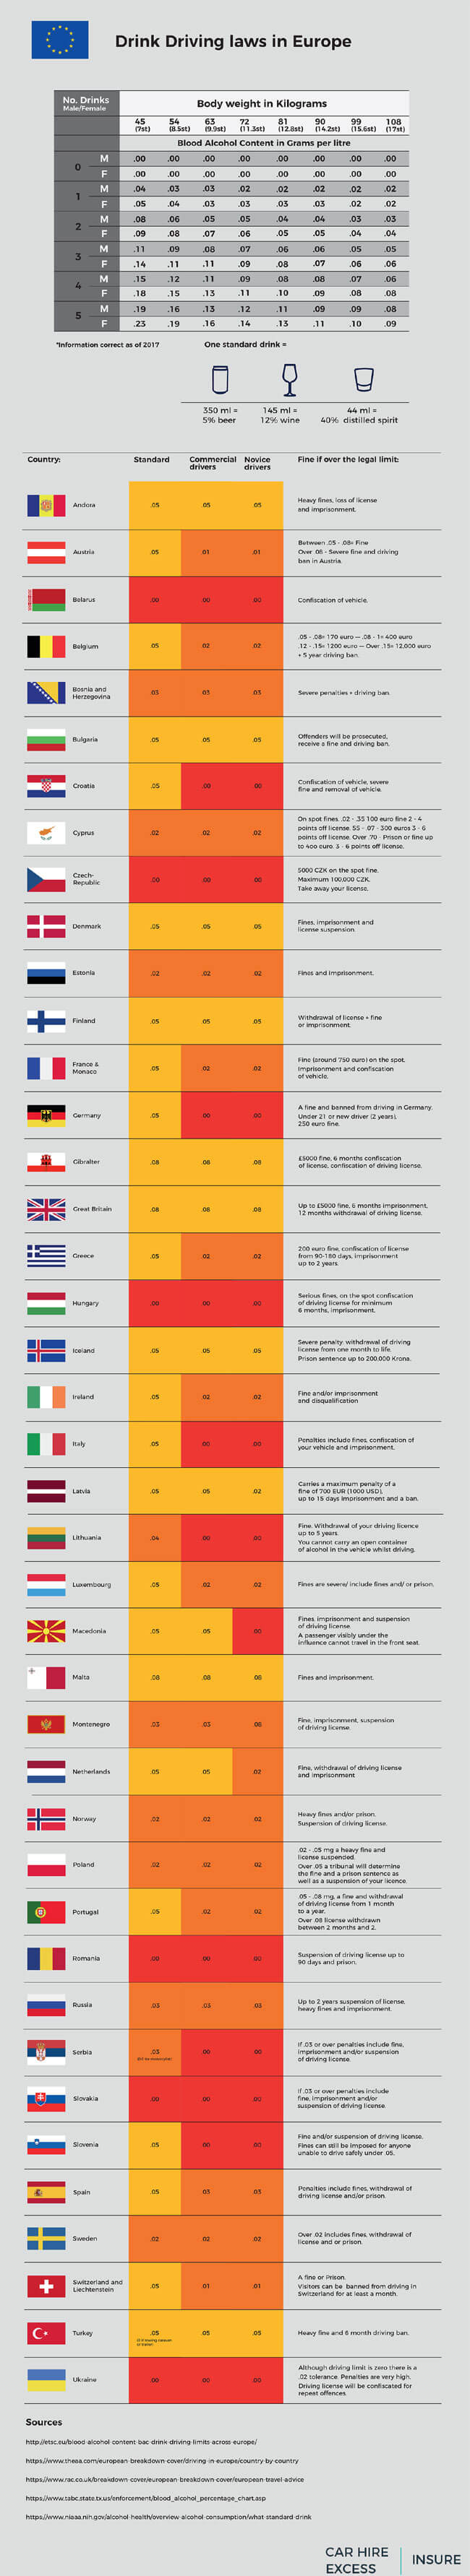 Drink Driving Laws in Europe